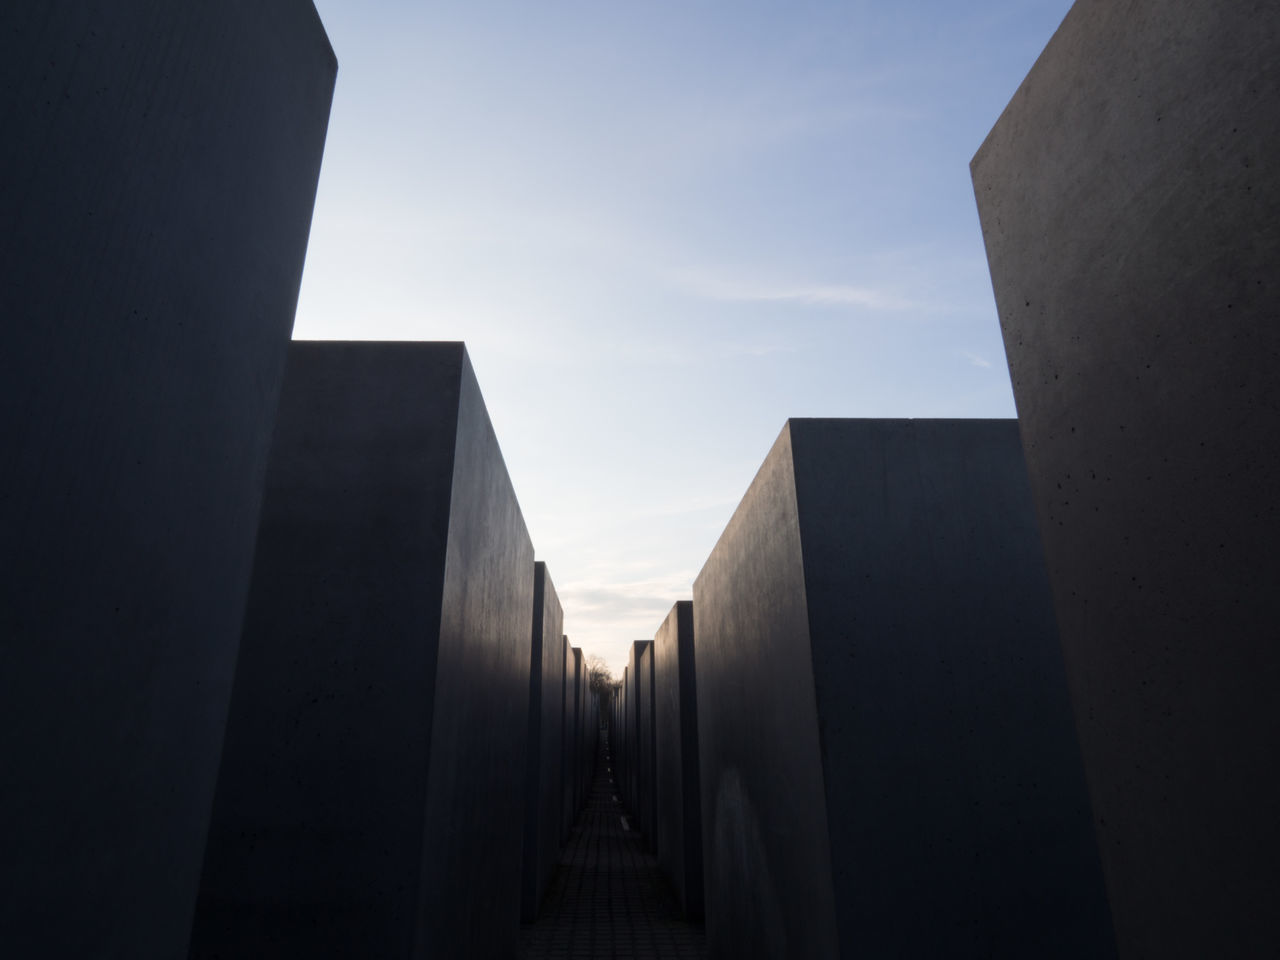 Architecture Berlin Built Structure Day Low Angle View Memorial No People Outdoors Sky Stelenfeld Travel Destinations EyeEmNewHere